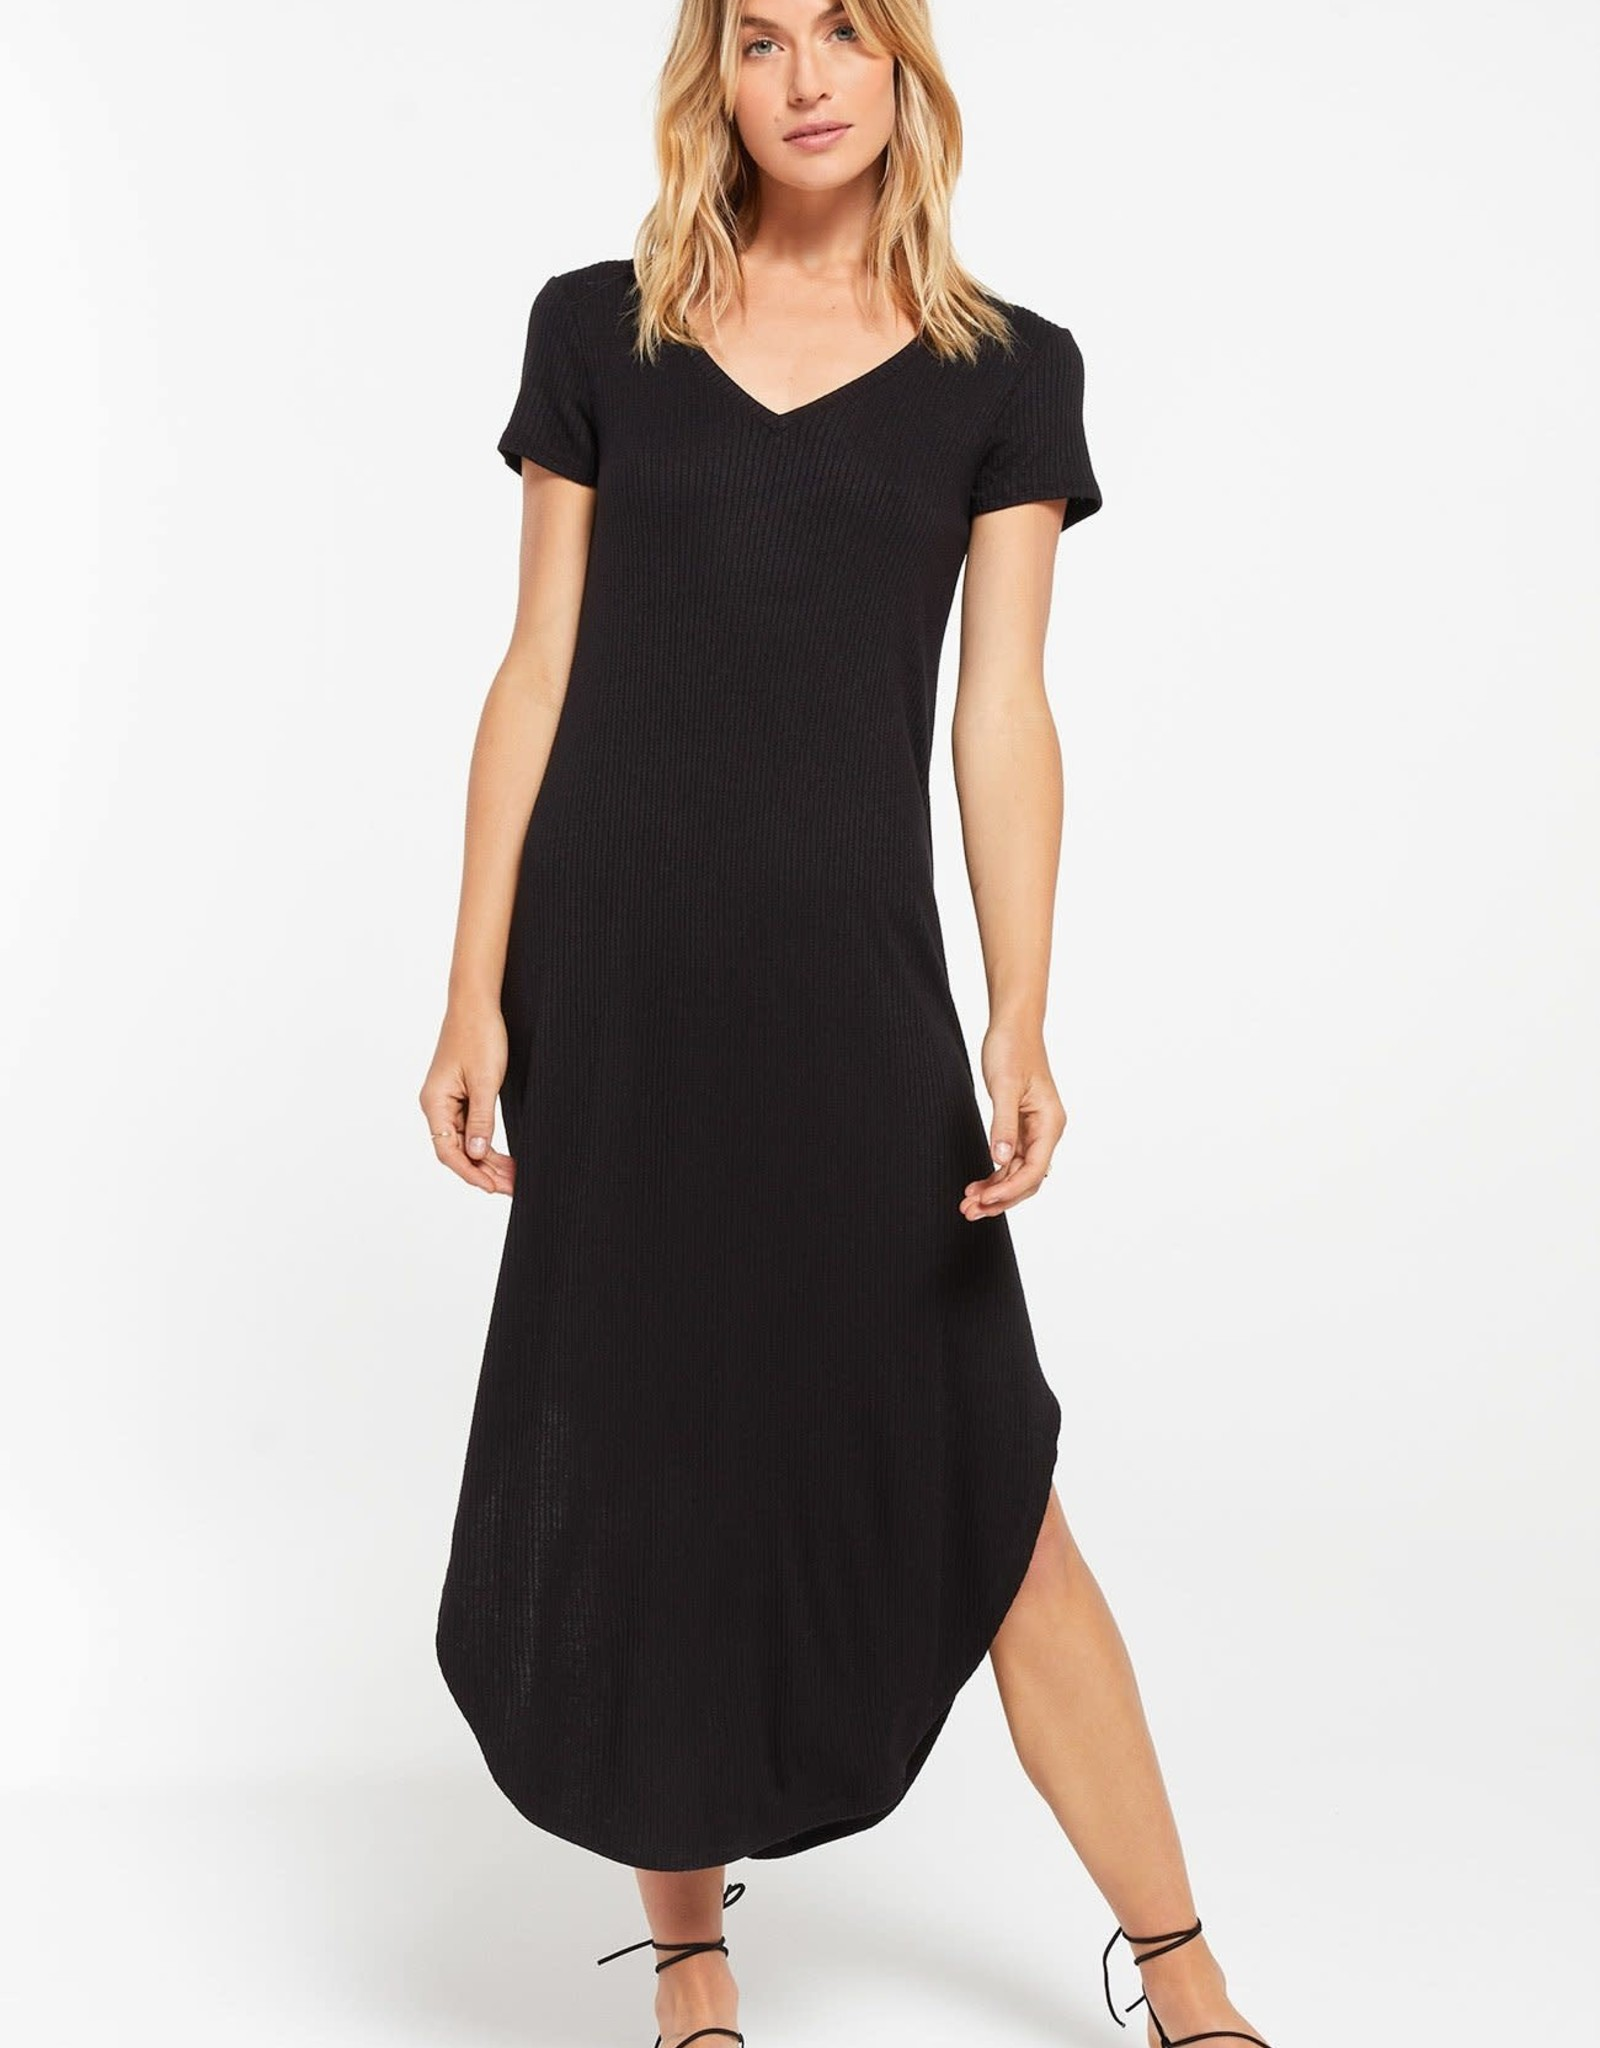 Z Supply Z Supply Reverie Rib Dress